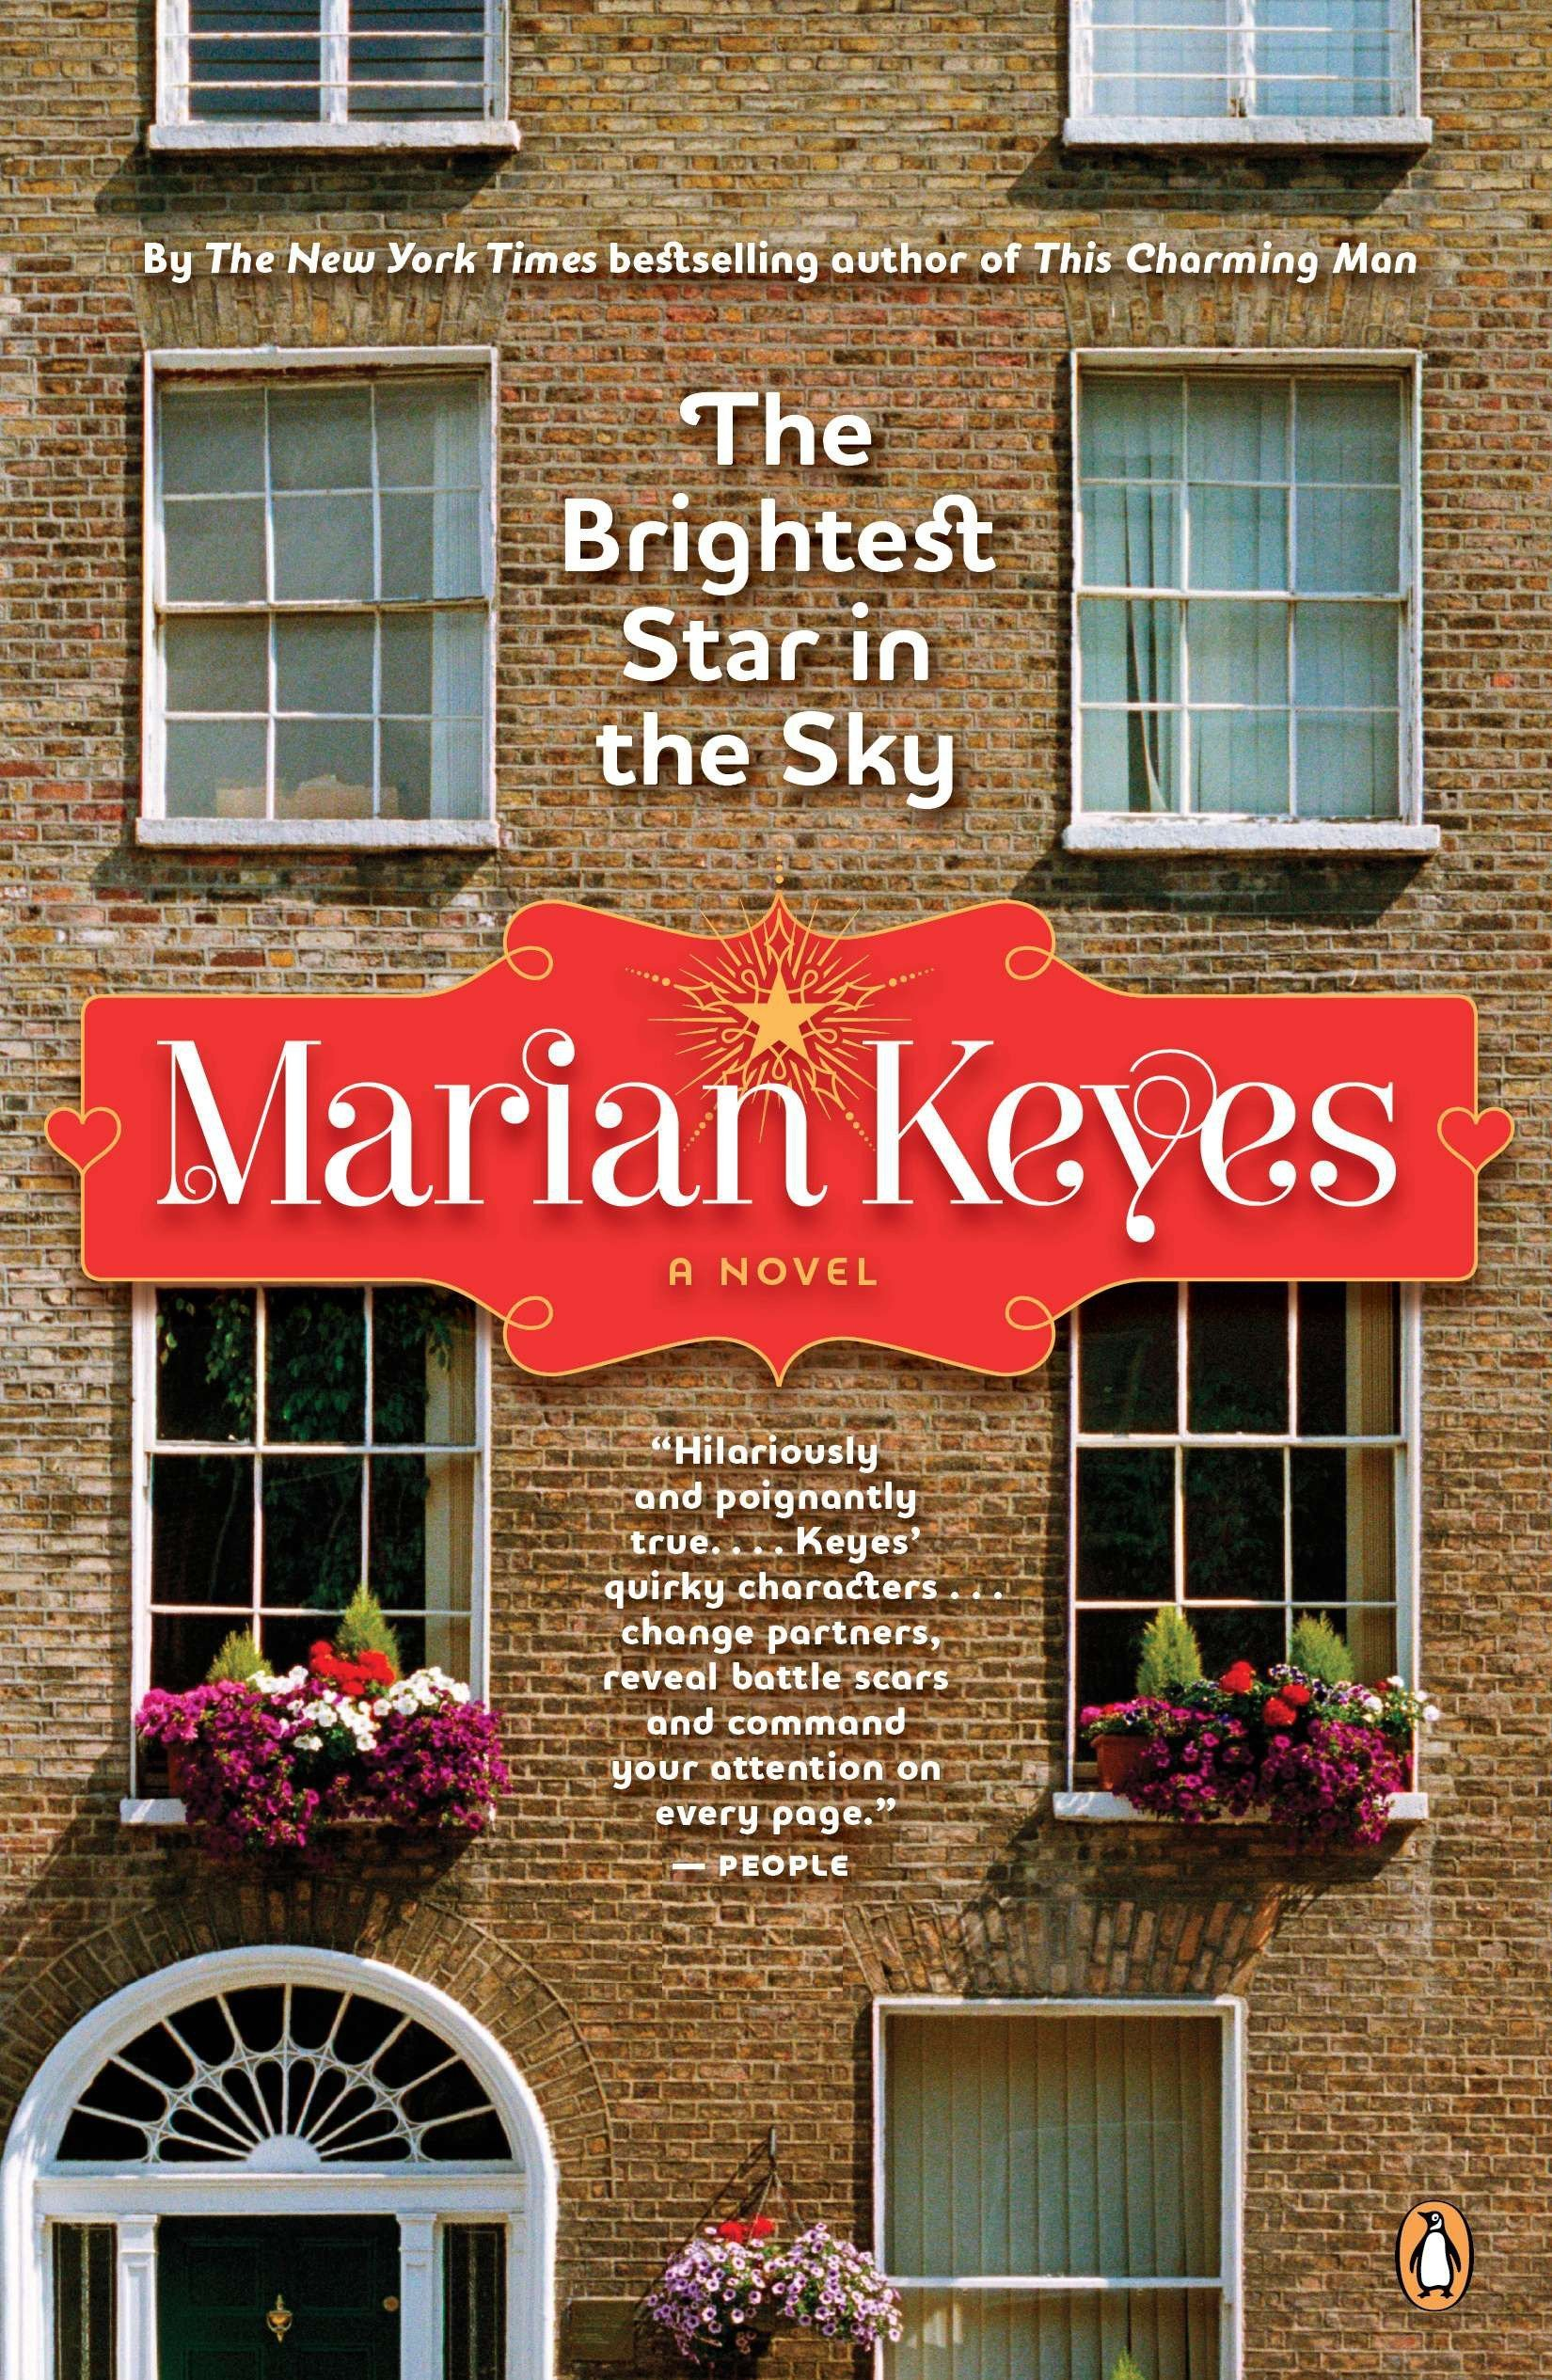 675765c68439e4 The Brightest Star in the Sky  A Novel  Marian Keyes  9780143118497 ...